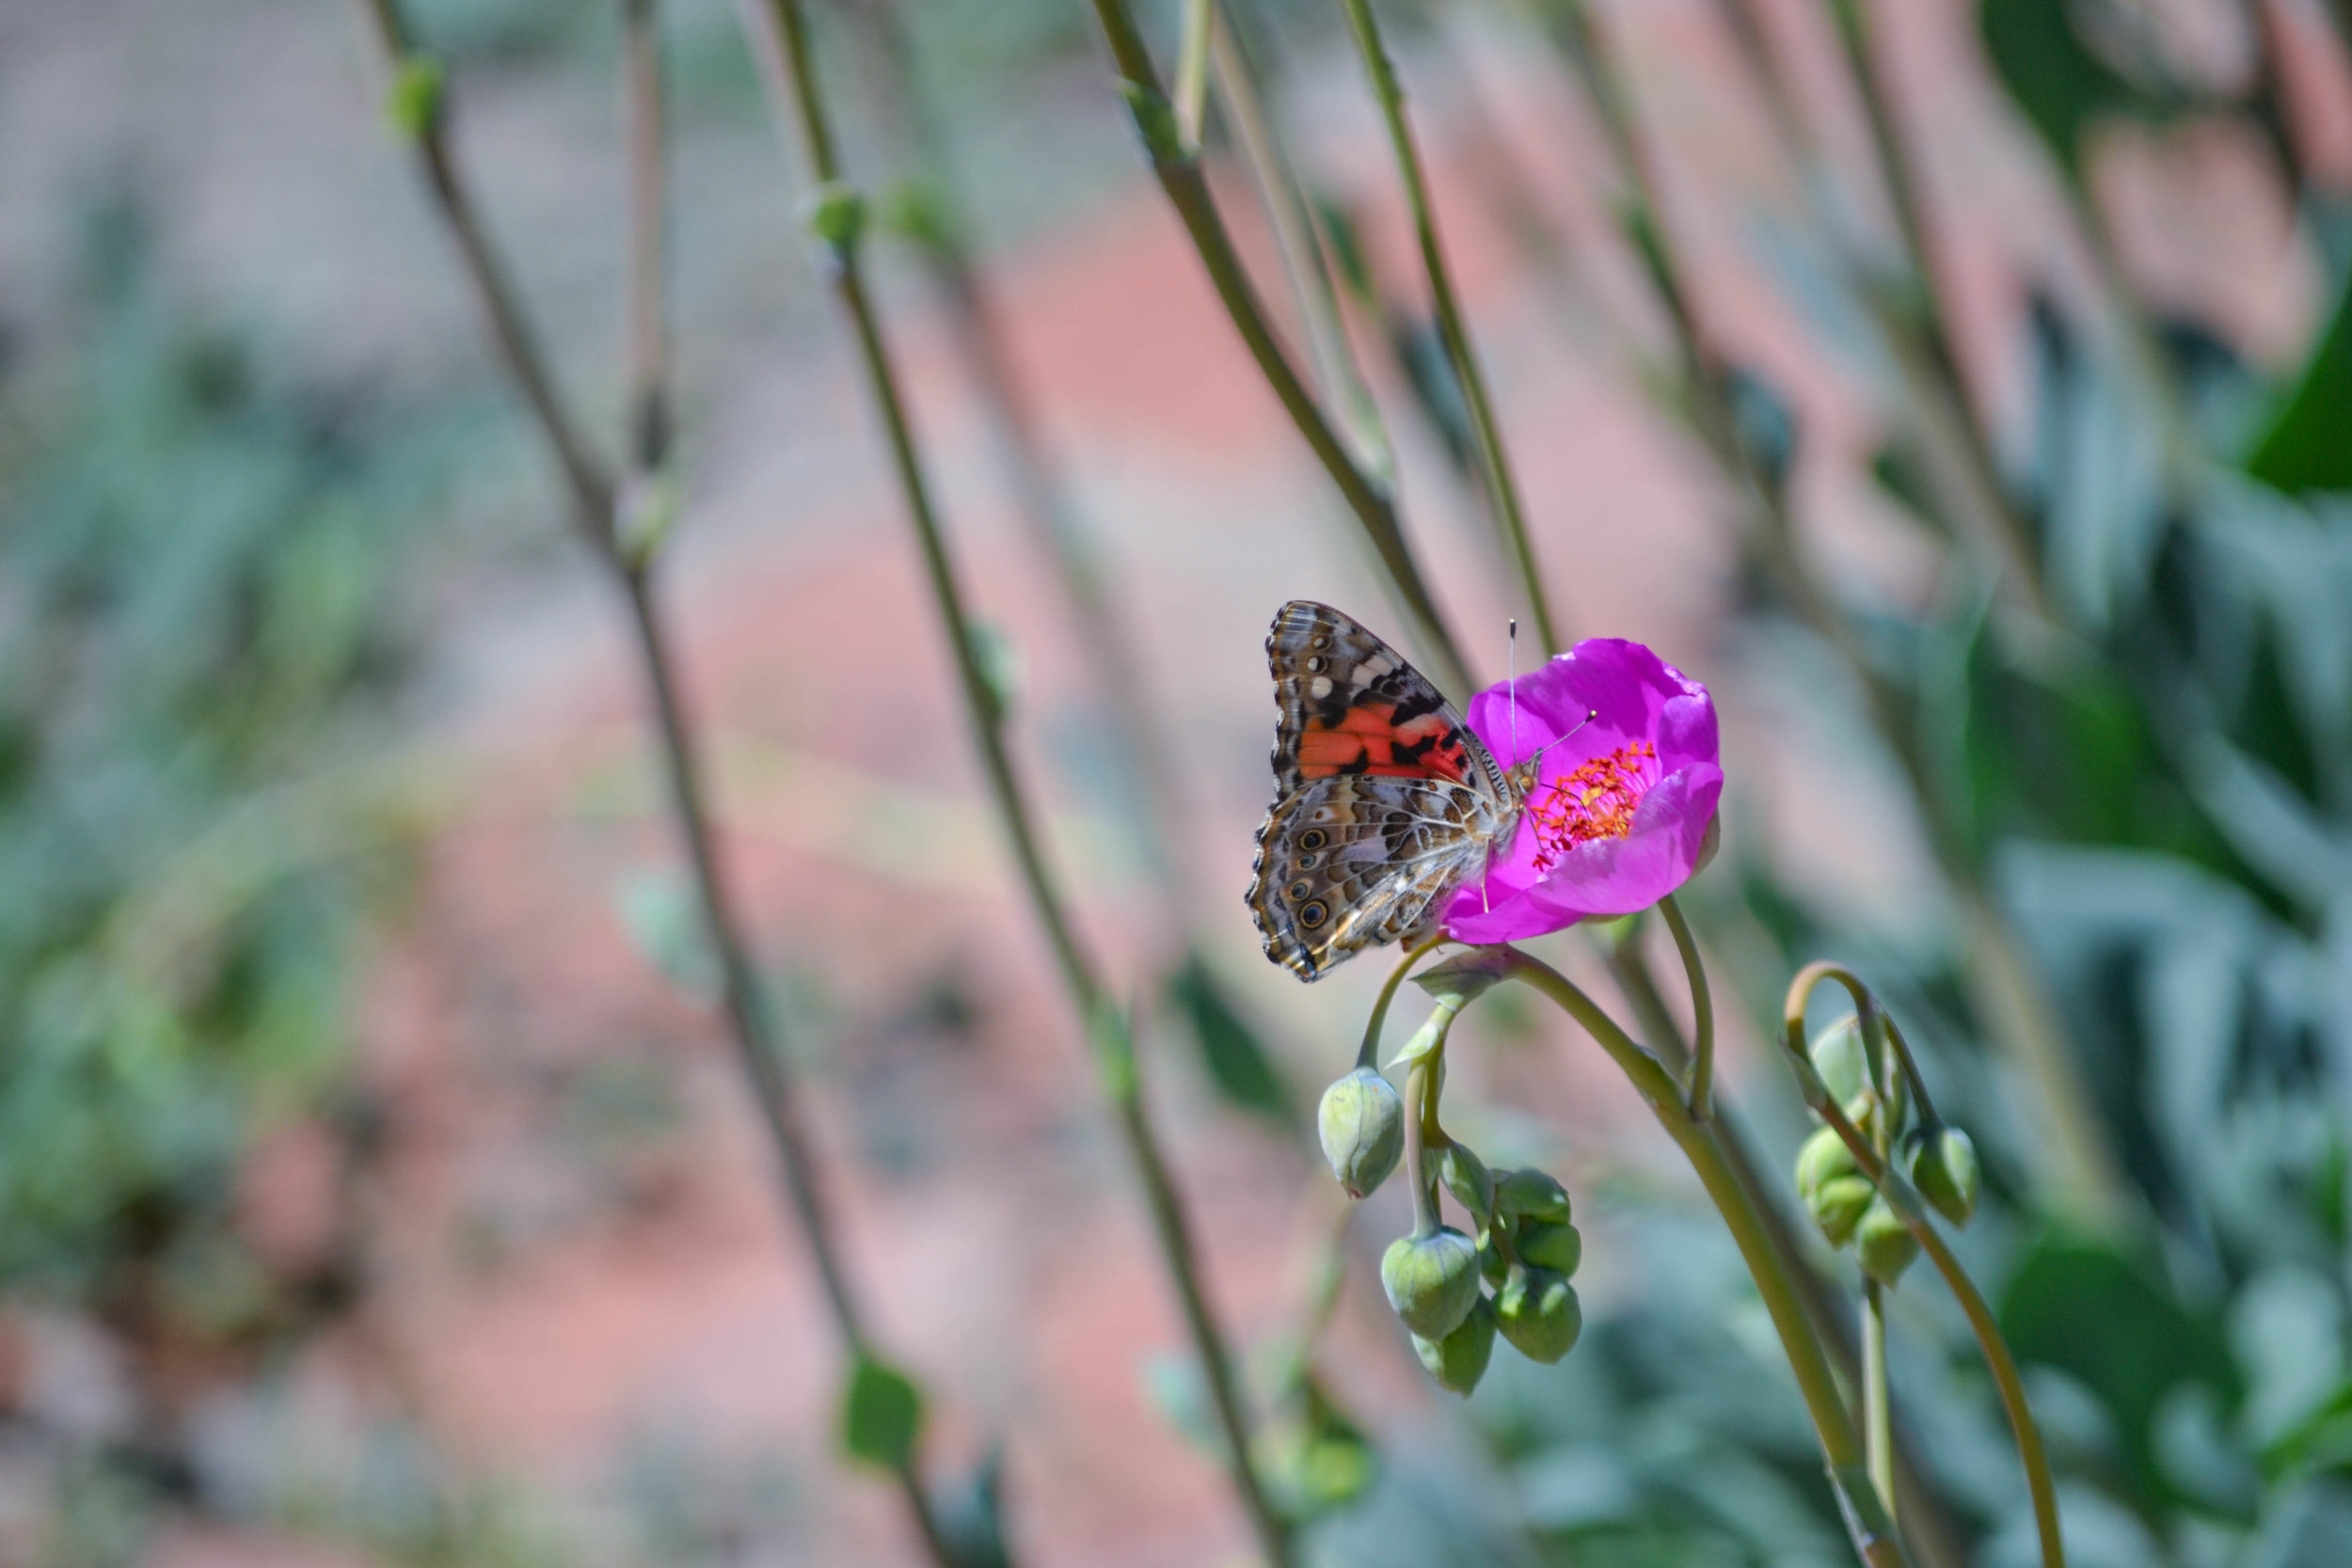 bri rinehart; photography; butterfly; nature